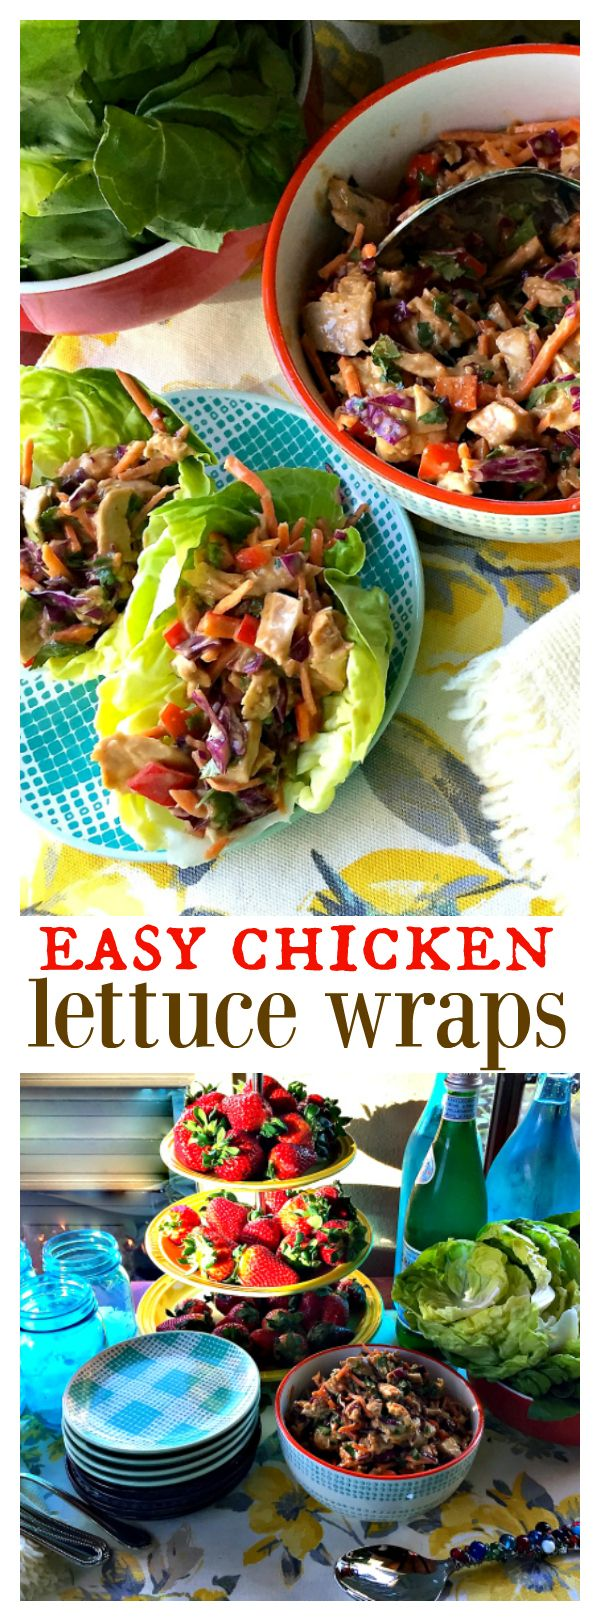 Easy Chicken Lettuce Wraps at ReluctantEntertainer.com